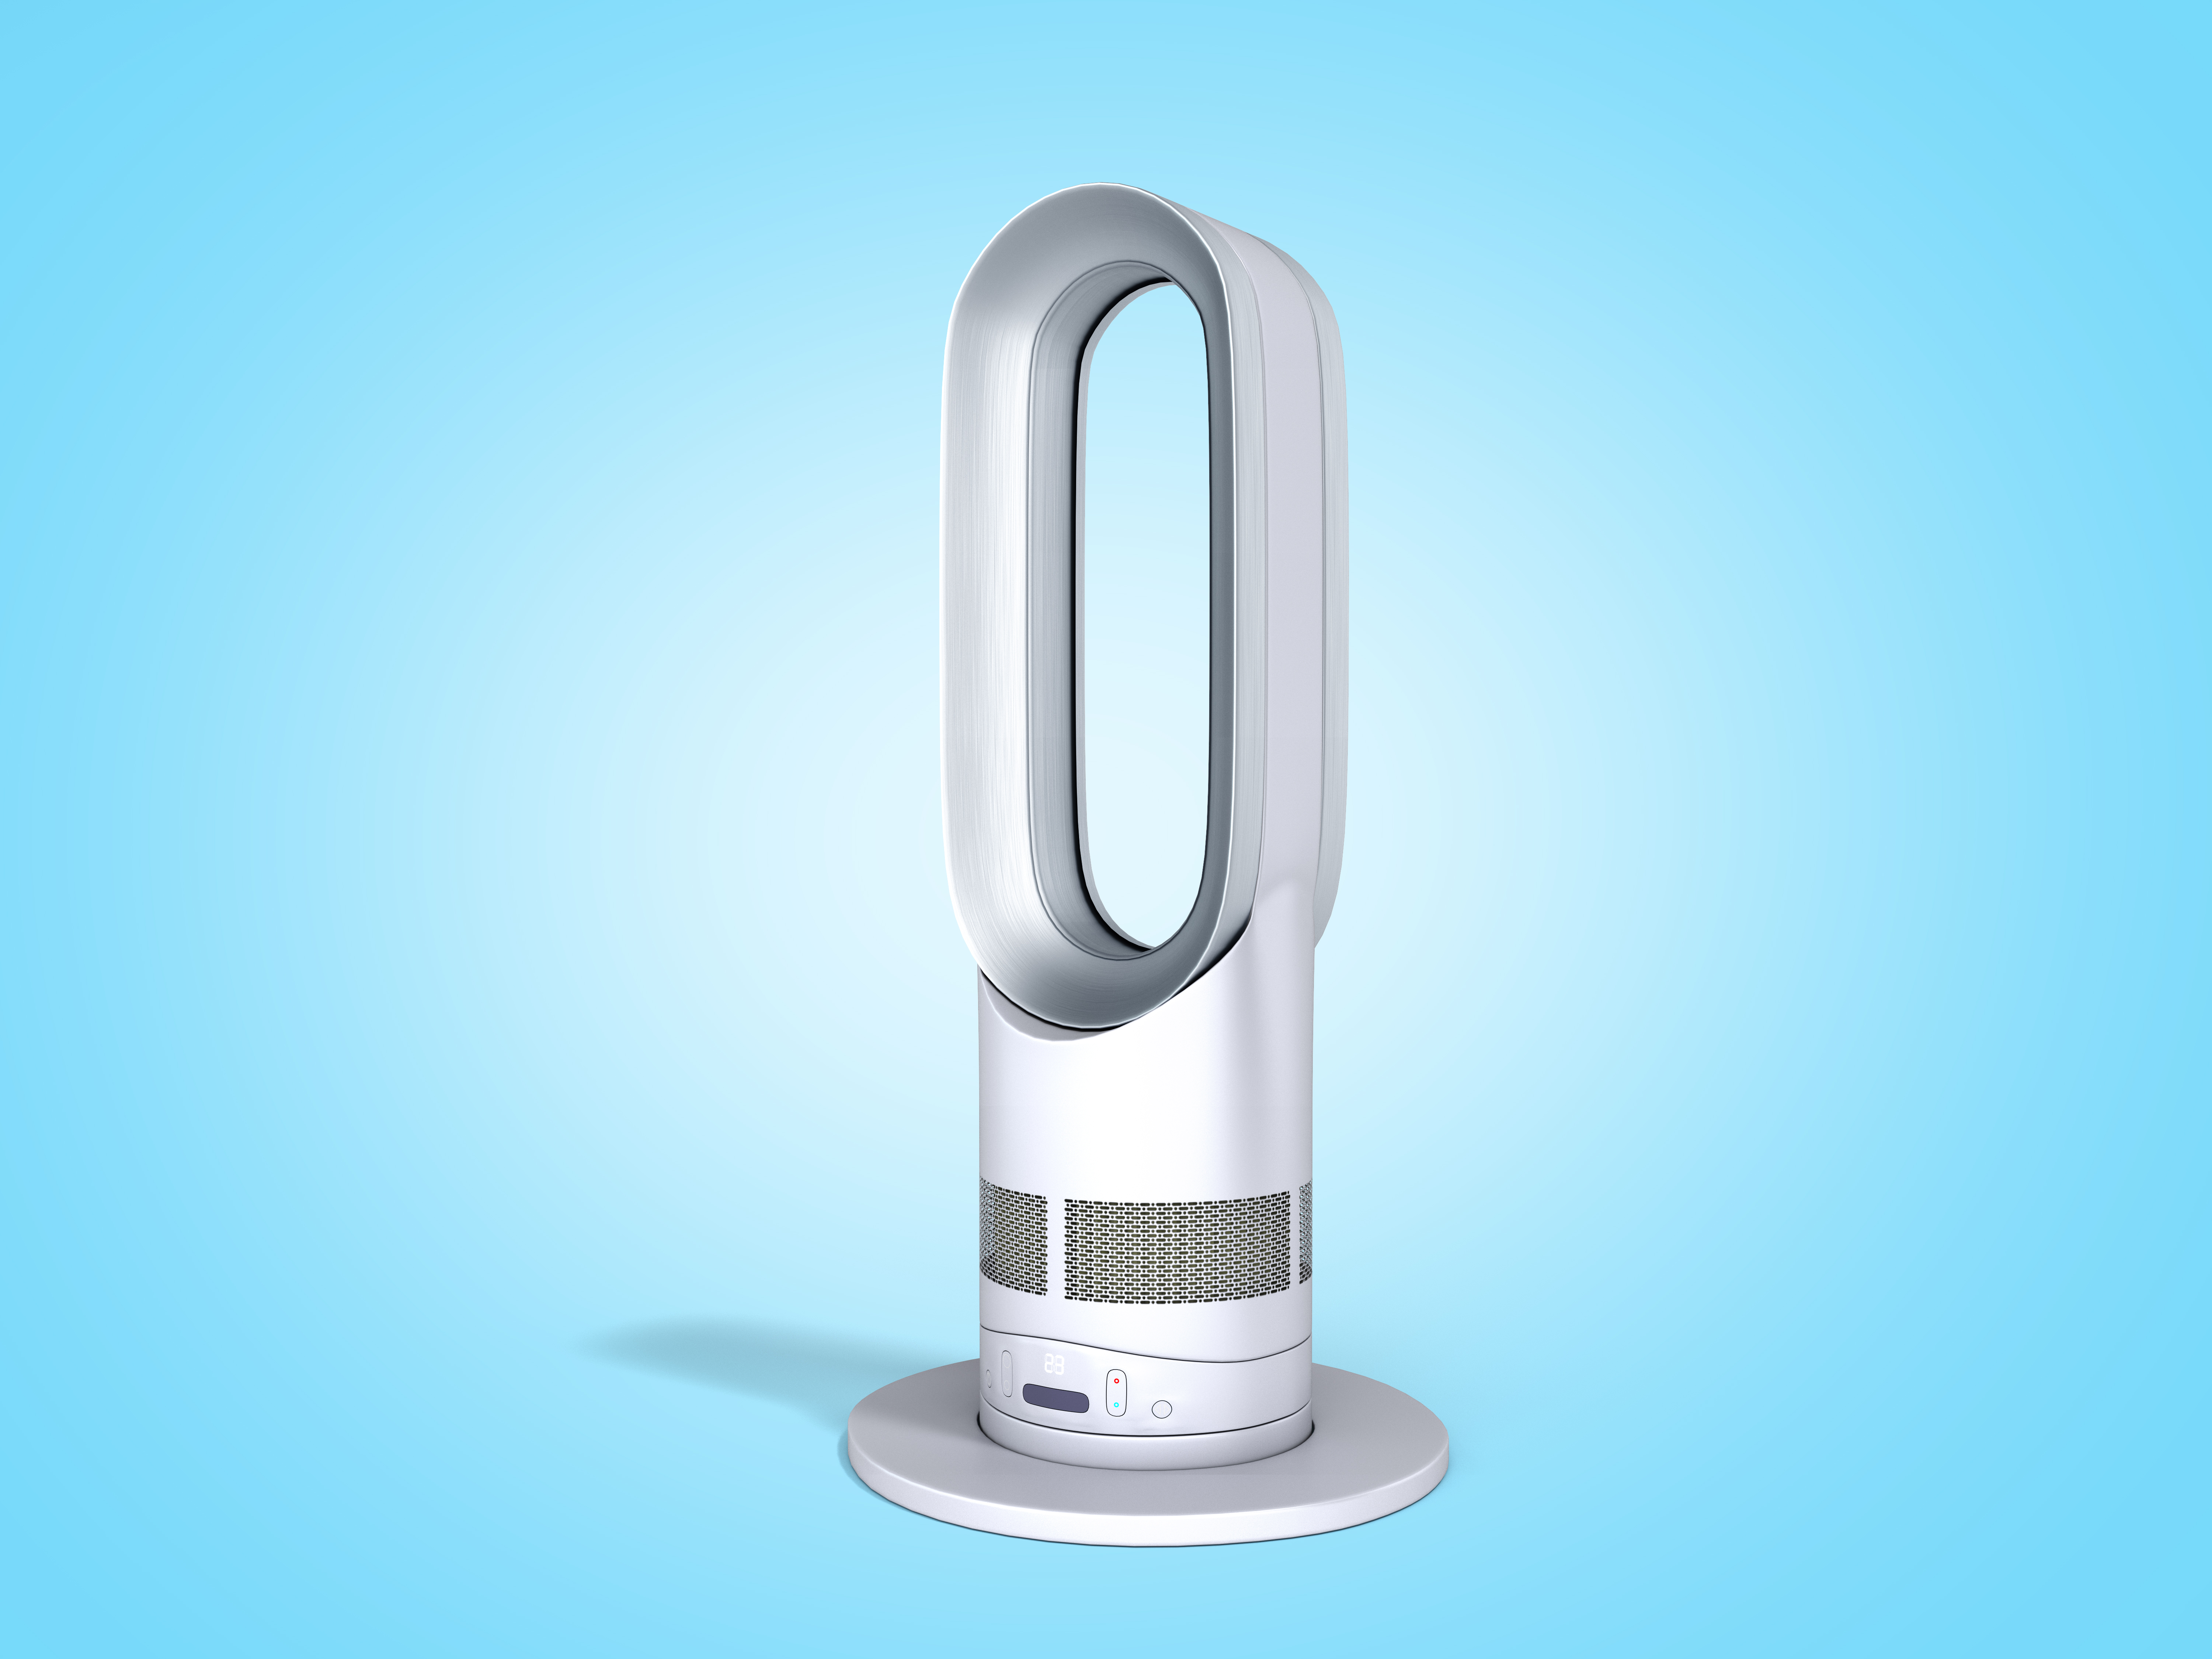 modern air purifier with heating and cooling function 3d render on blue gradient